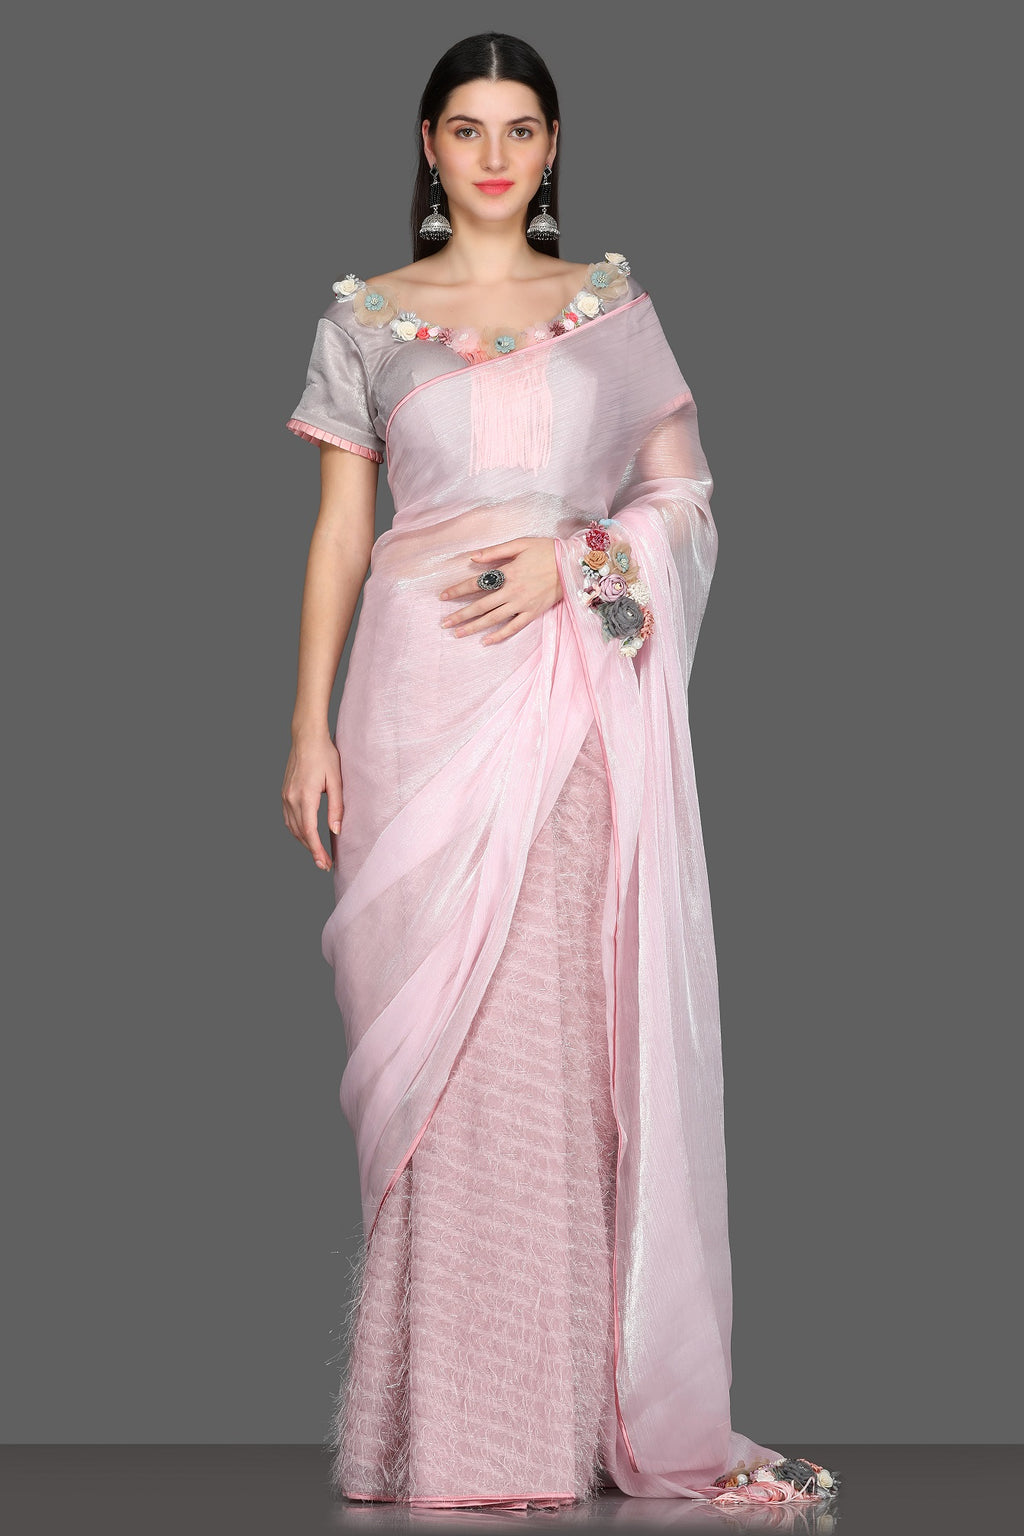 Buy charming powder pink half and half feather saree online in USA with sari blouse. Make a fashion statement at weddings with stunning designer sarees, embroidered sarees with blouse, wedding sarees, handloom sarees from Pure Elegance Indian fashion store in USA.-full view